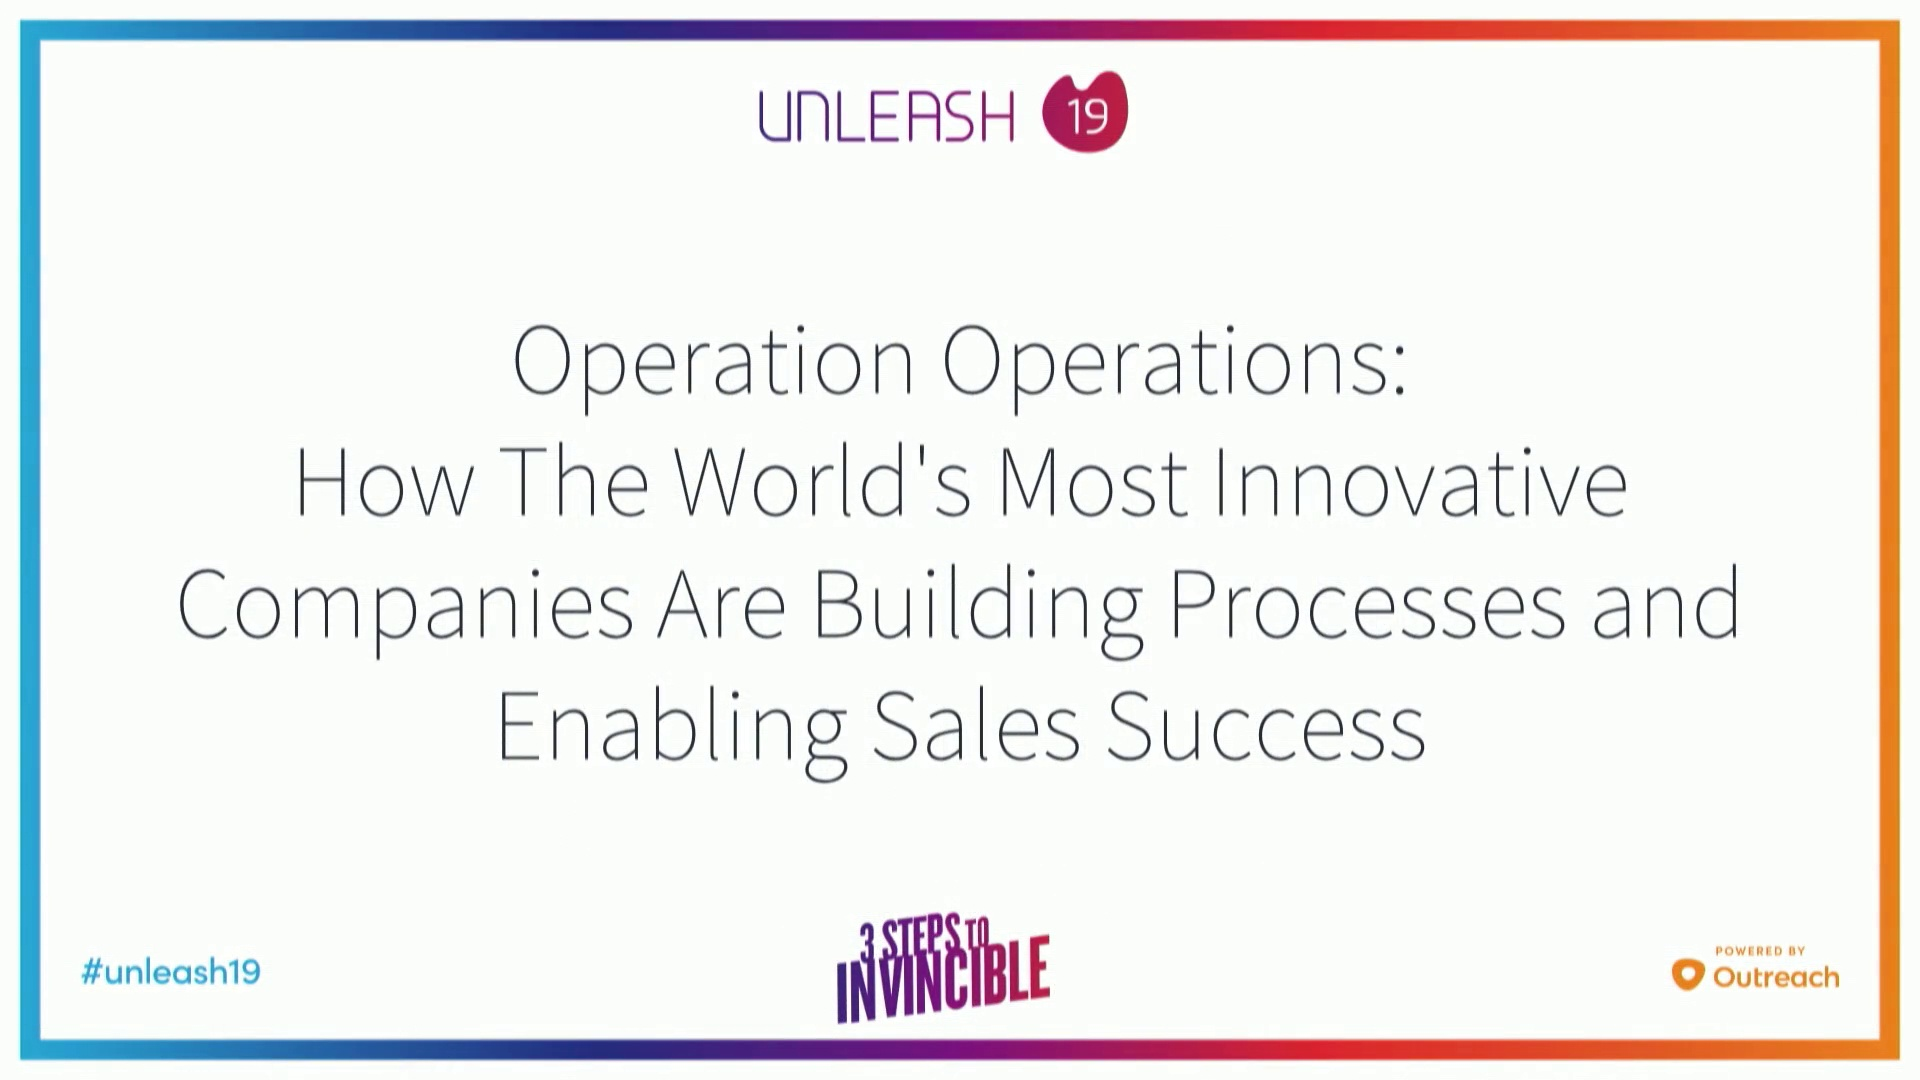 Operation Operations How The World's Most Innovative Companies Are Building Processes and Enabling Sales Success - Marcus Bening, Jason Paquette, AJ Ghandi